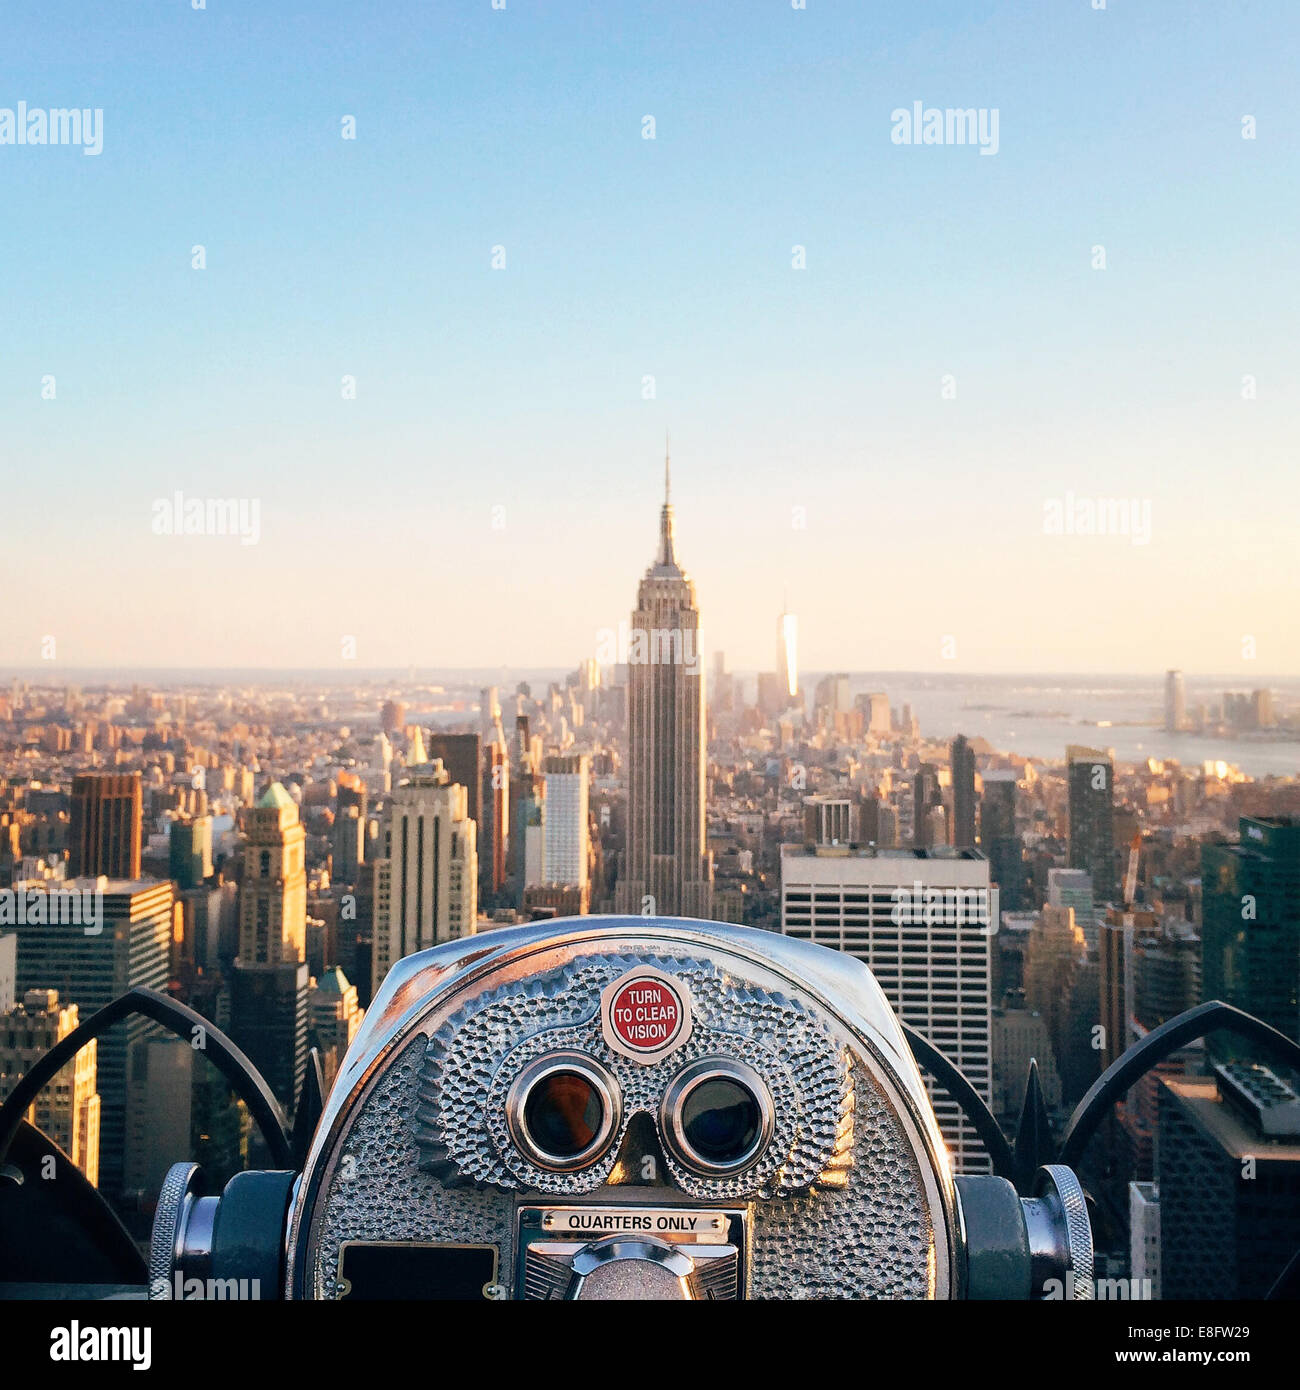 USA, New York State, New York, vue de l'Empire State Building Photo Stock